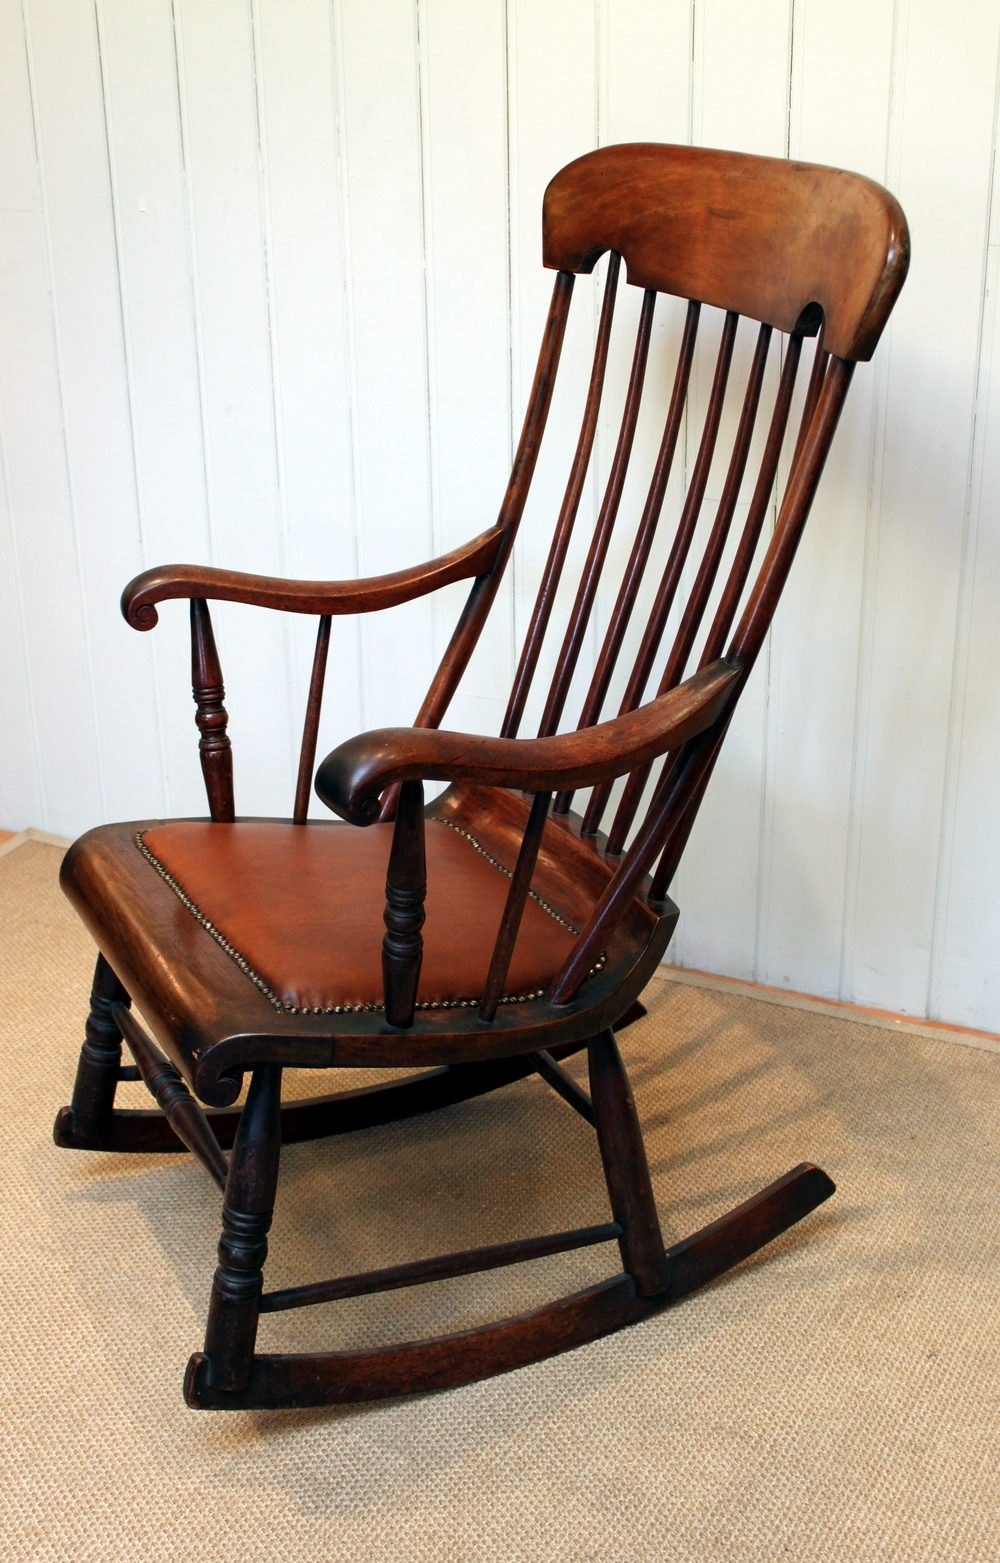 Victorian Fruitwood Rocking Chair – Antiques Atlas For 2017 Victorian Rocking Chairs (View 11 of 15)